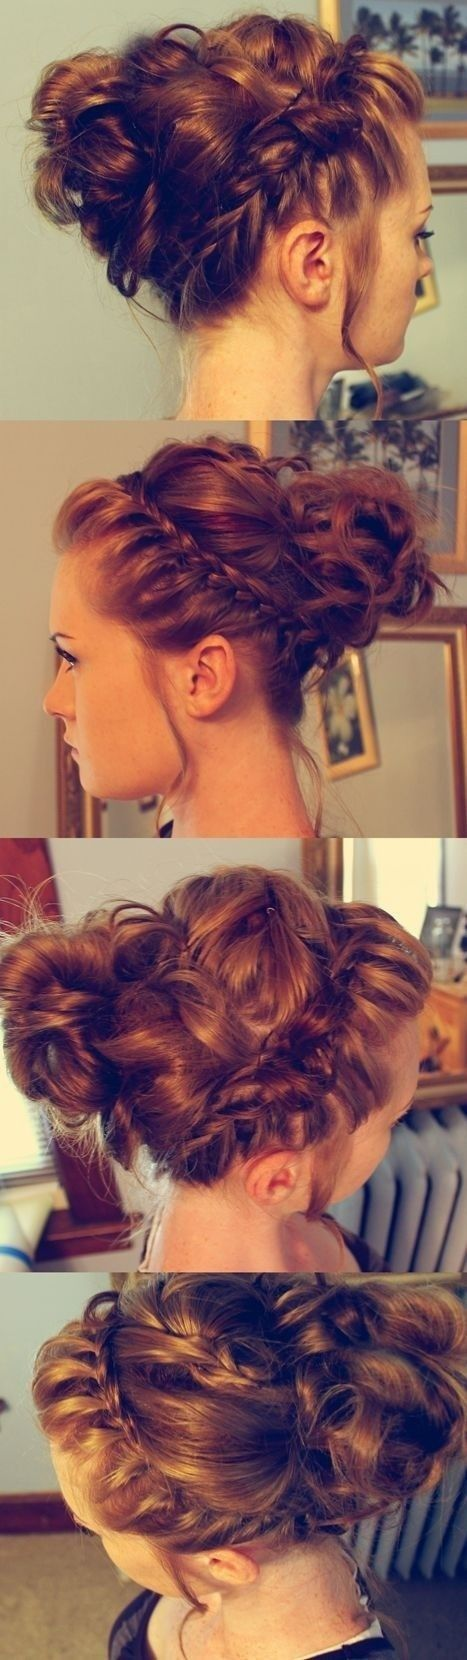 Gorgeous hair up-do idea for prom